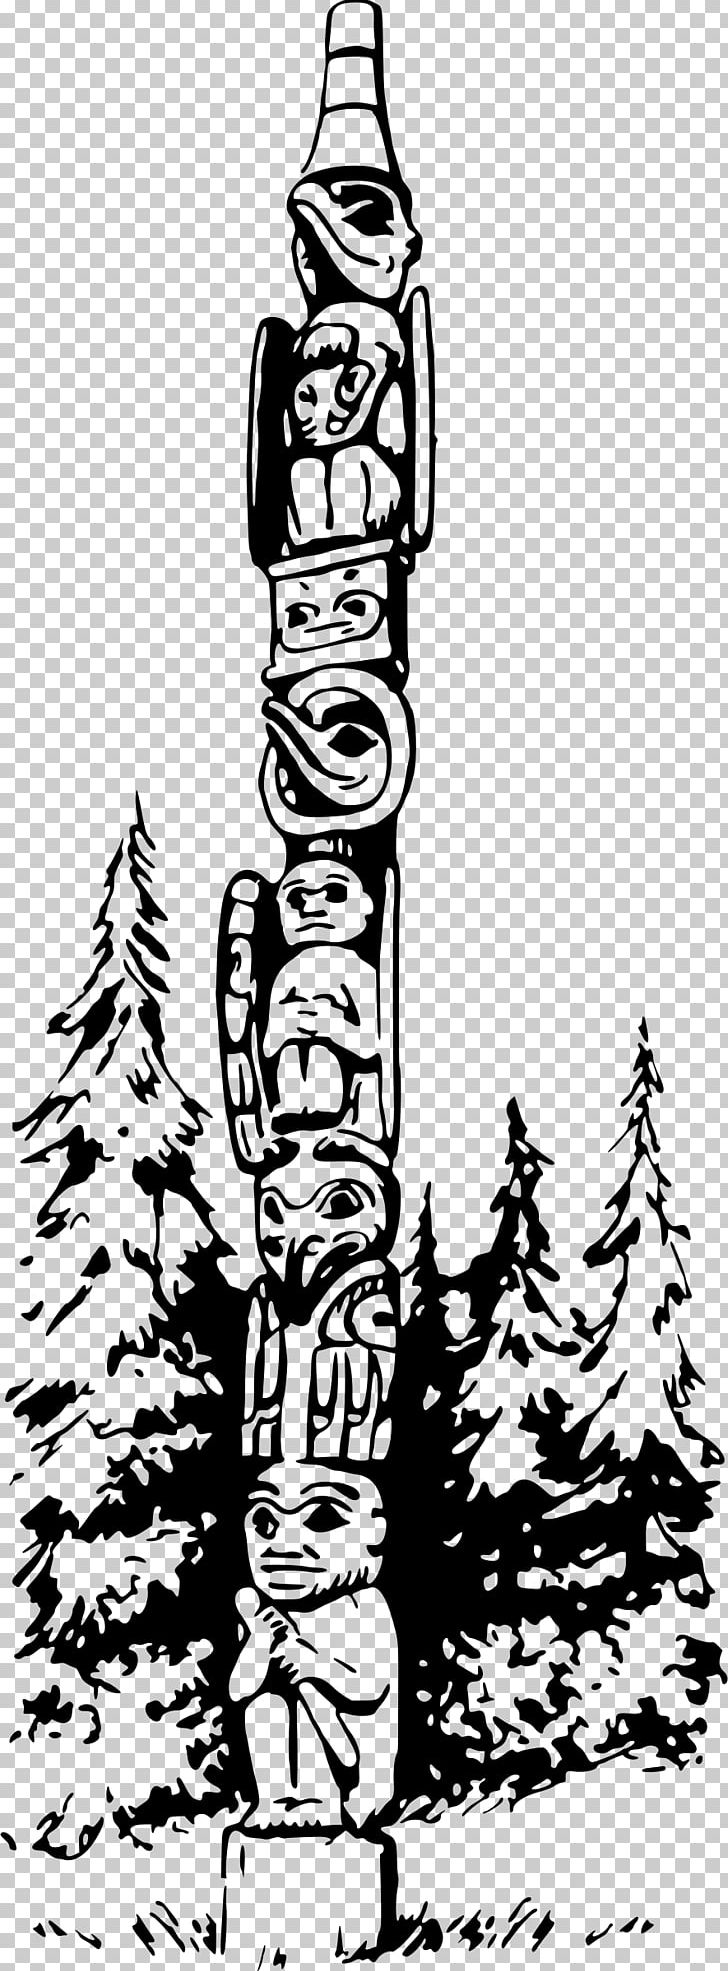 medium resolution of totem pole png clipart art black and white color coloring book drawing free png download